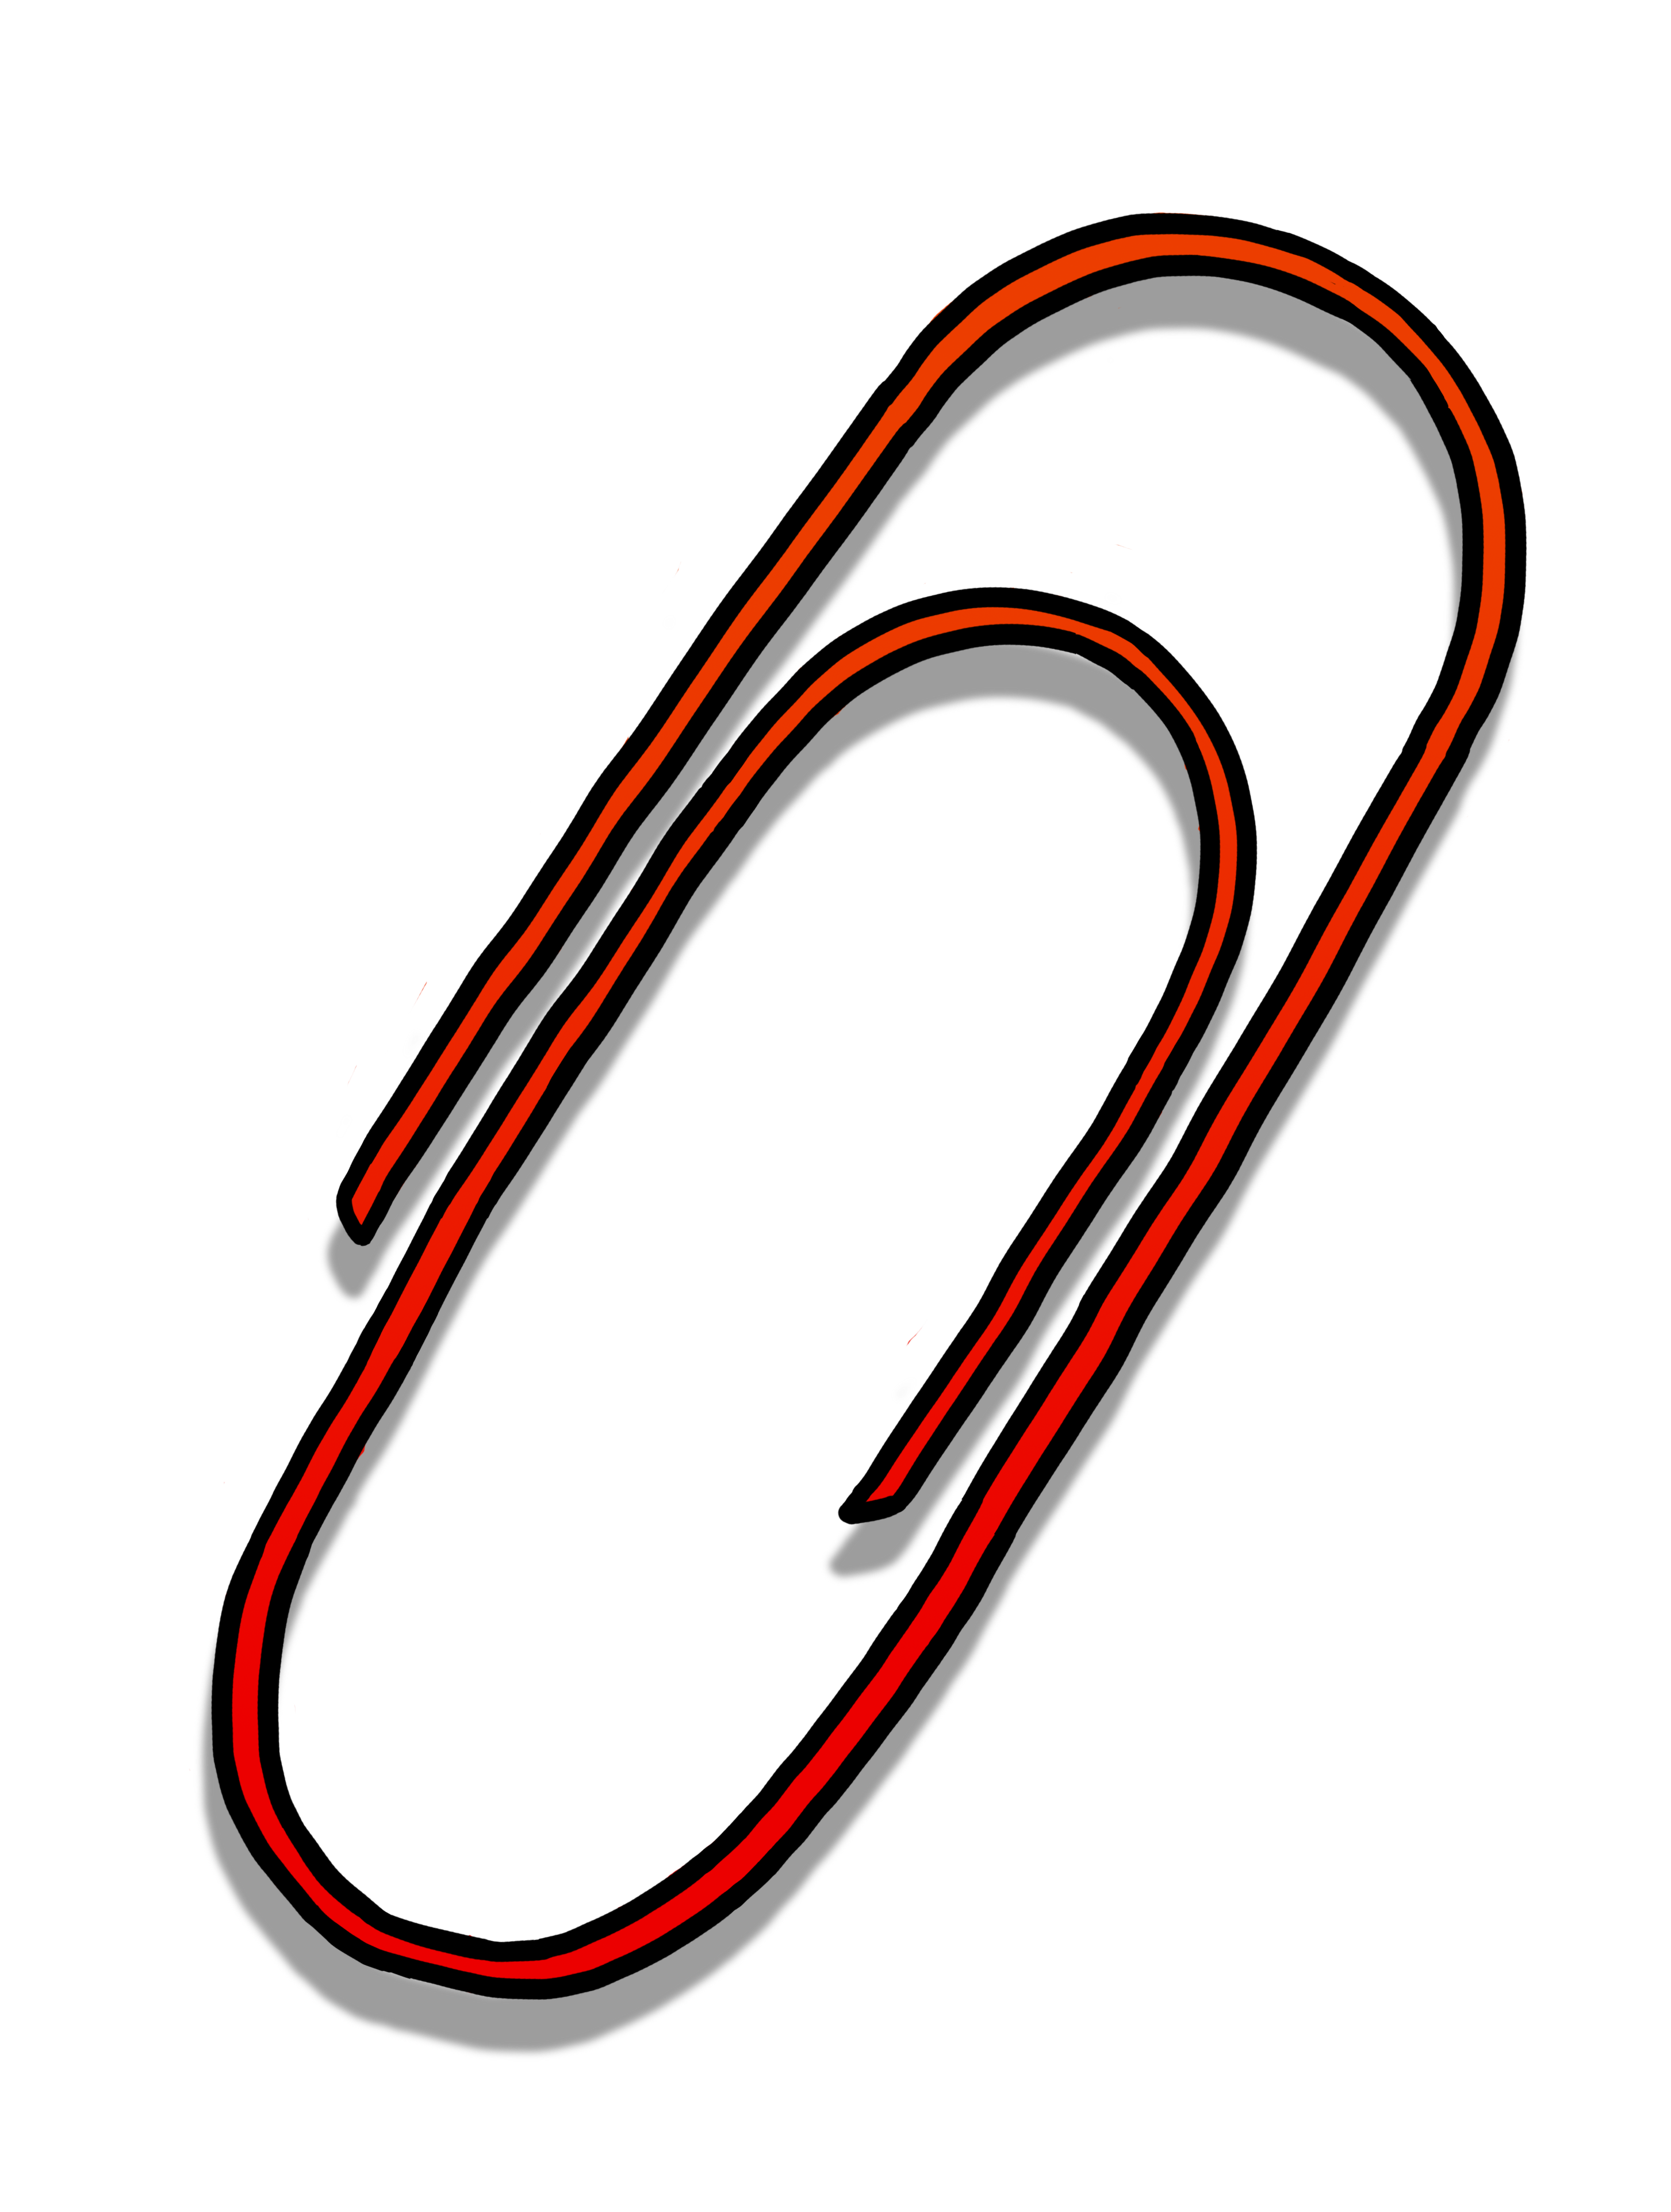 paper clip Paperclip definition, a flat wire or plastic clip shaped so that it can hold sheets of paper between two of its loops see more.